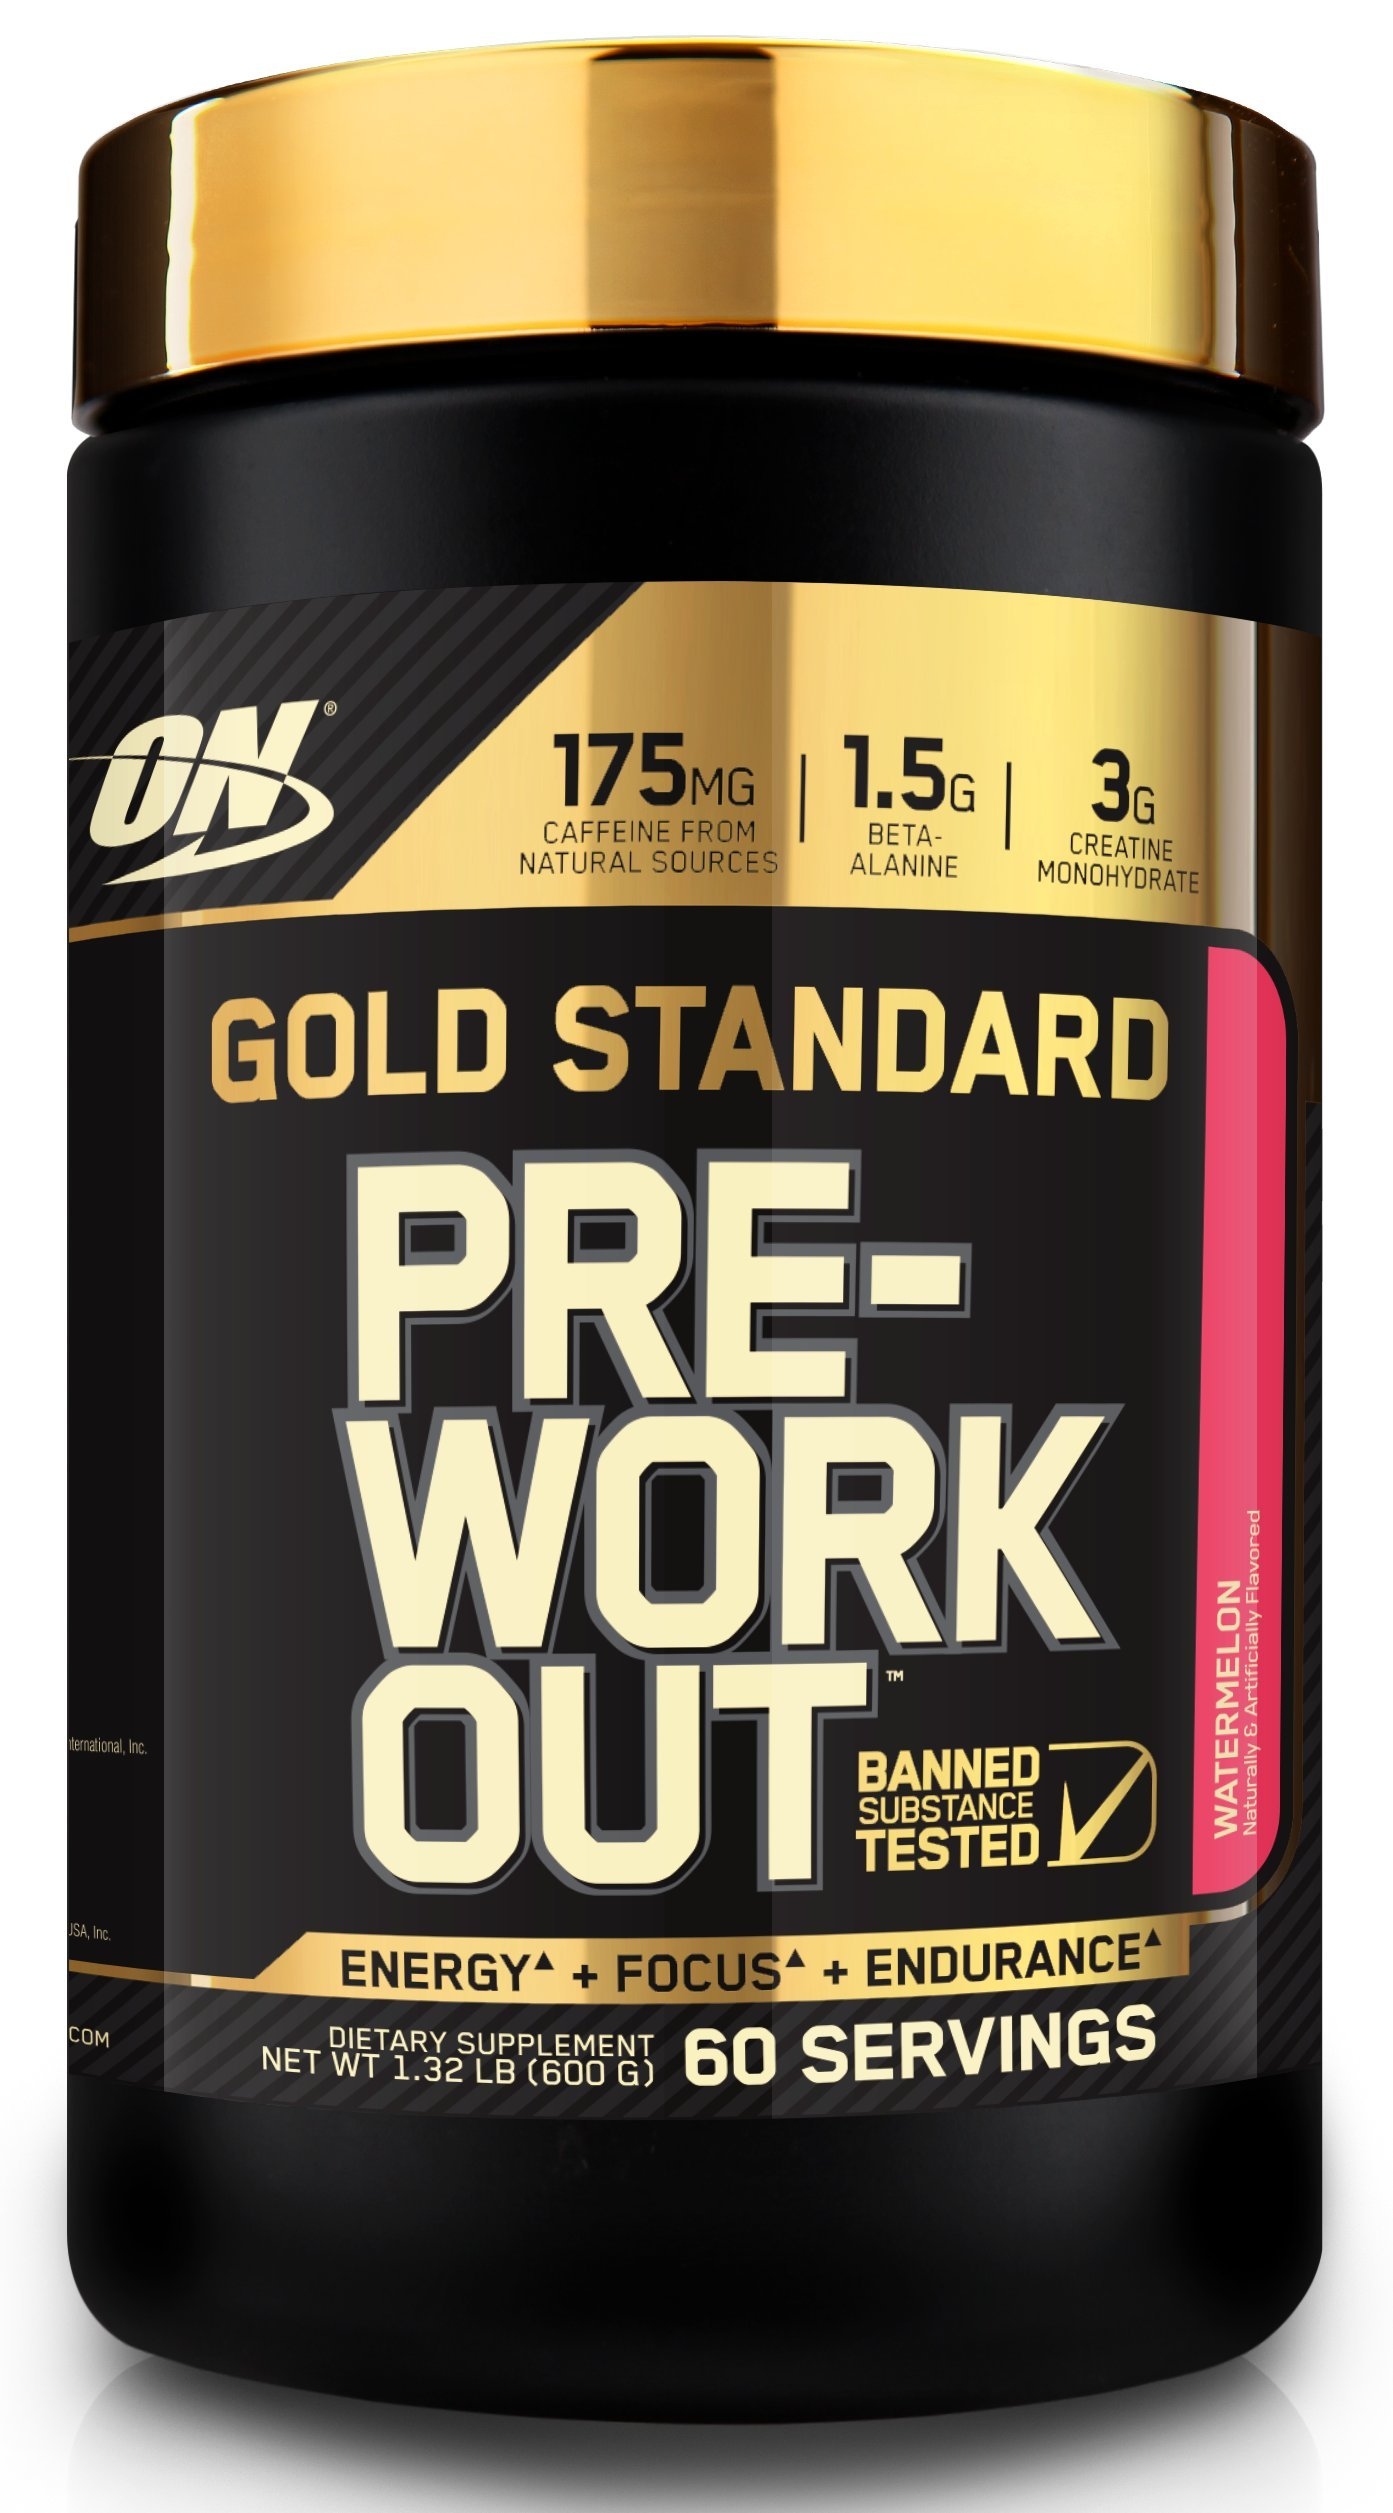 Optimum Nutrition Gold Standard Pre-Workout with Creatine, Beta-Alanine, and Caffeine for Energy, Flavor: Watermelon, 60 Servings